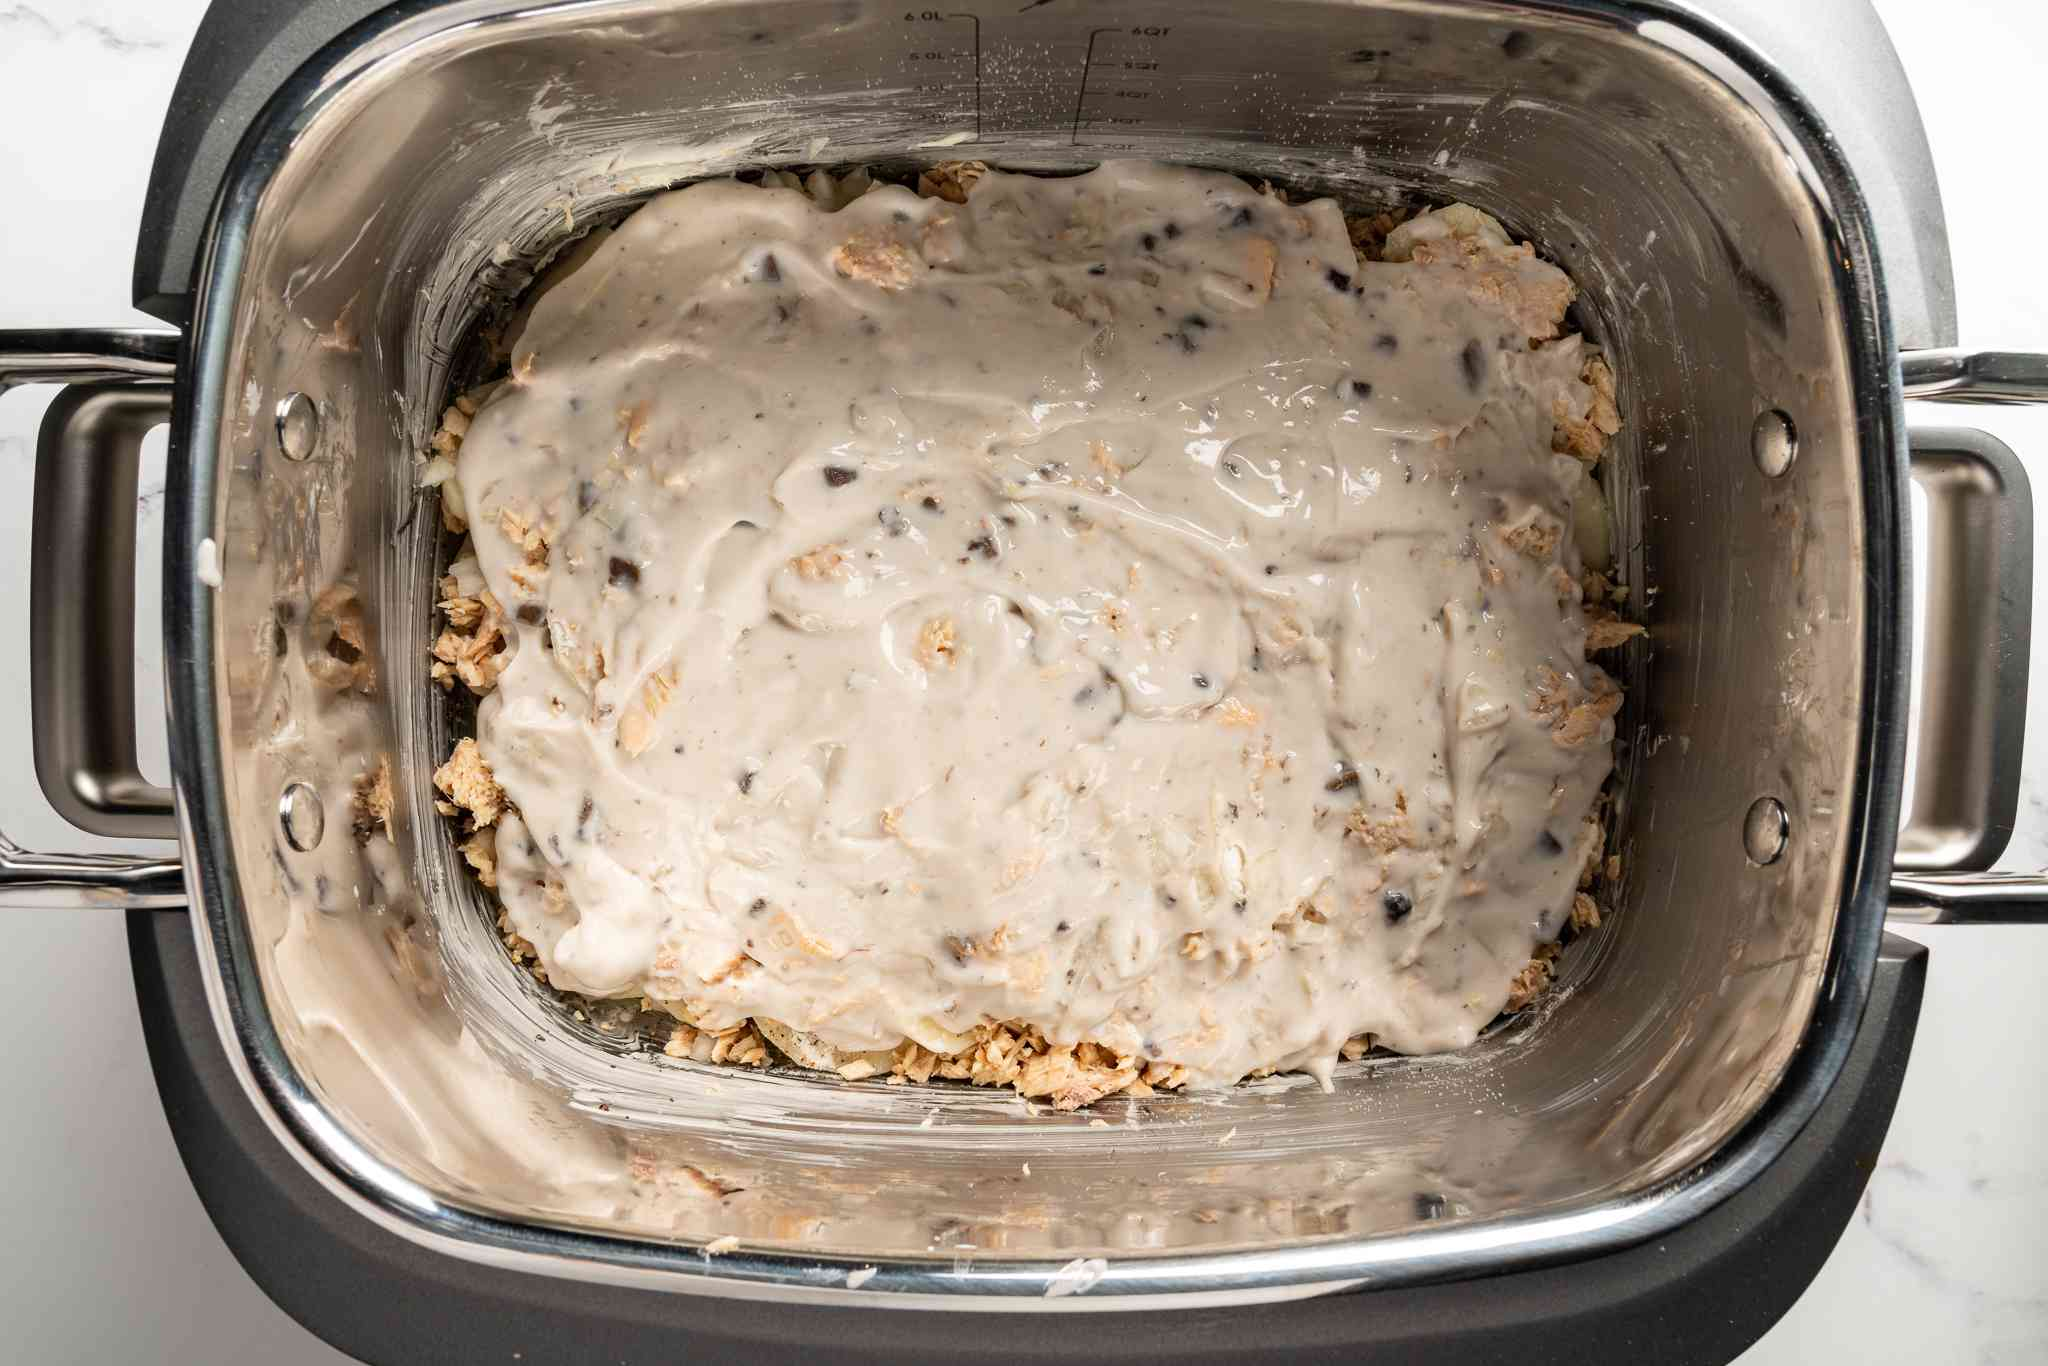 Pour the soup mixture over the top of potato and salmon mixture in the crock pot